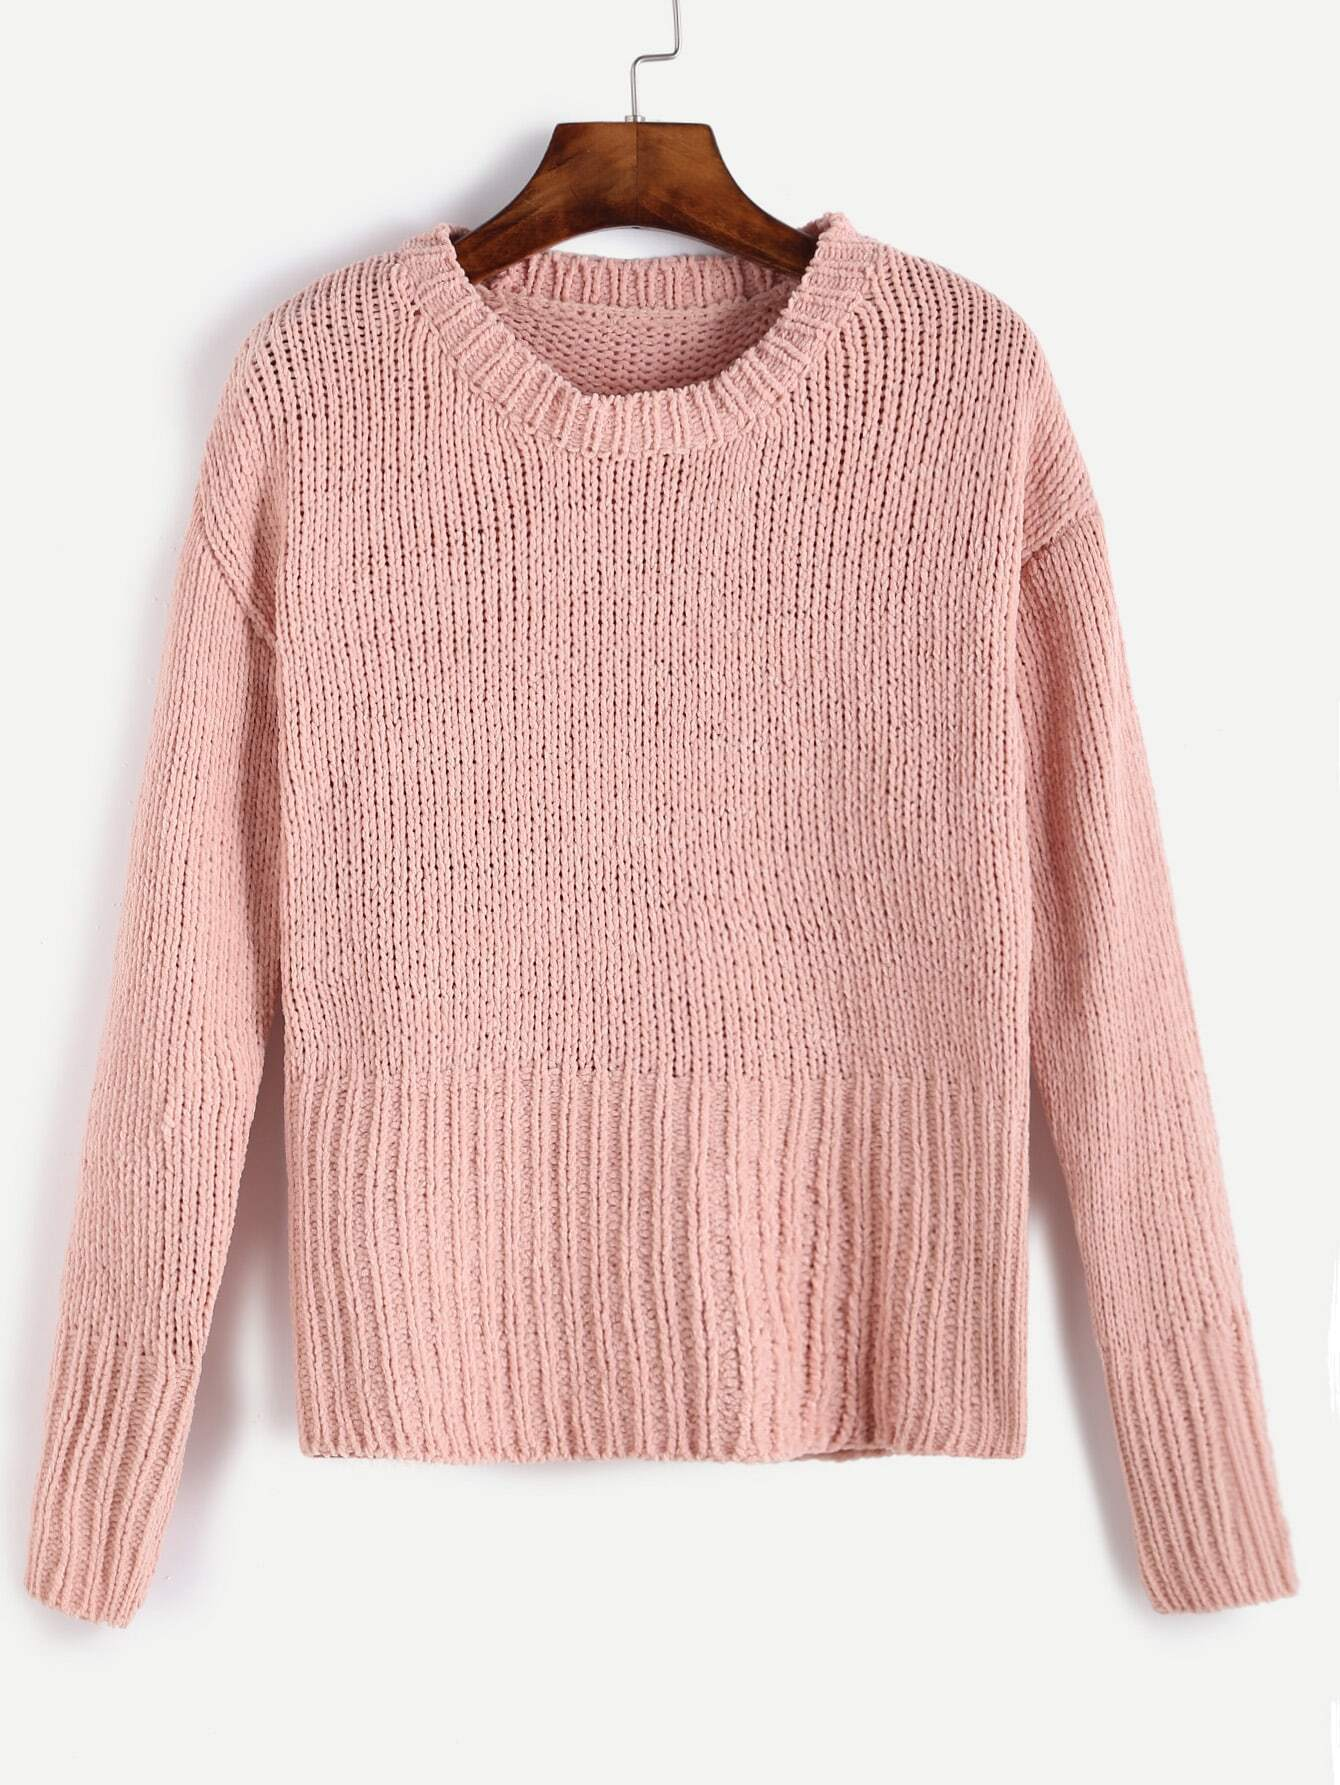 Knitting Sweaters In The Round : Pink round neck ribbed knit sweaterfor women romwe